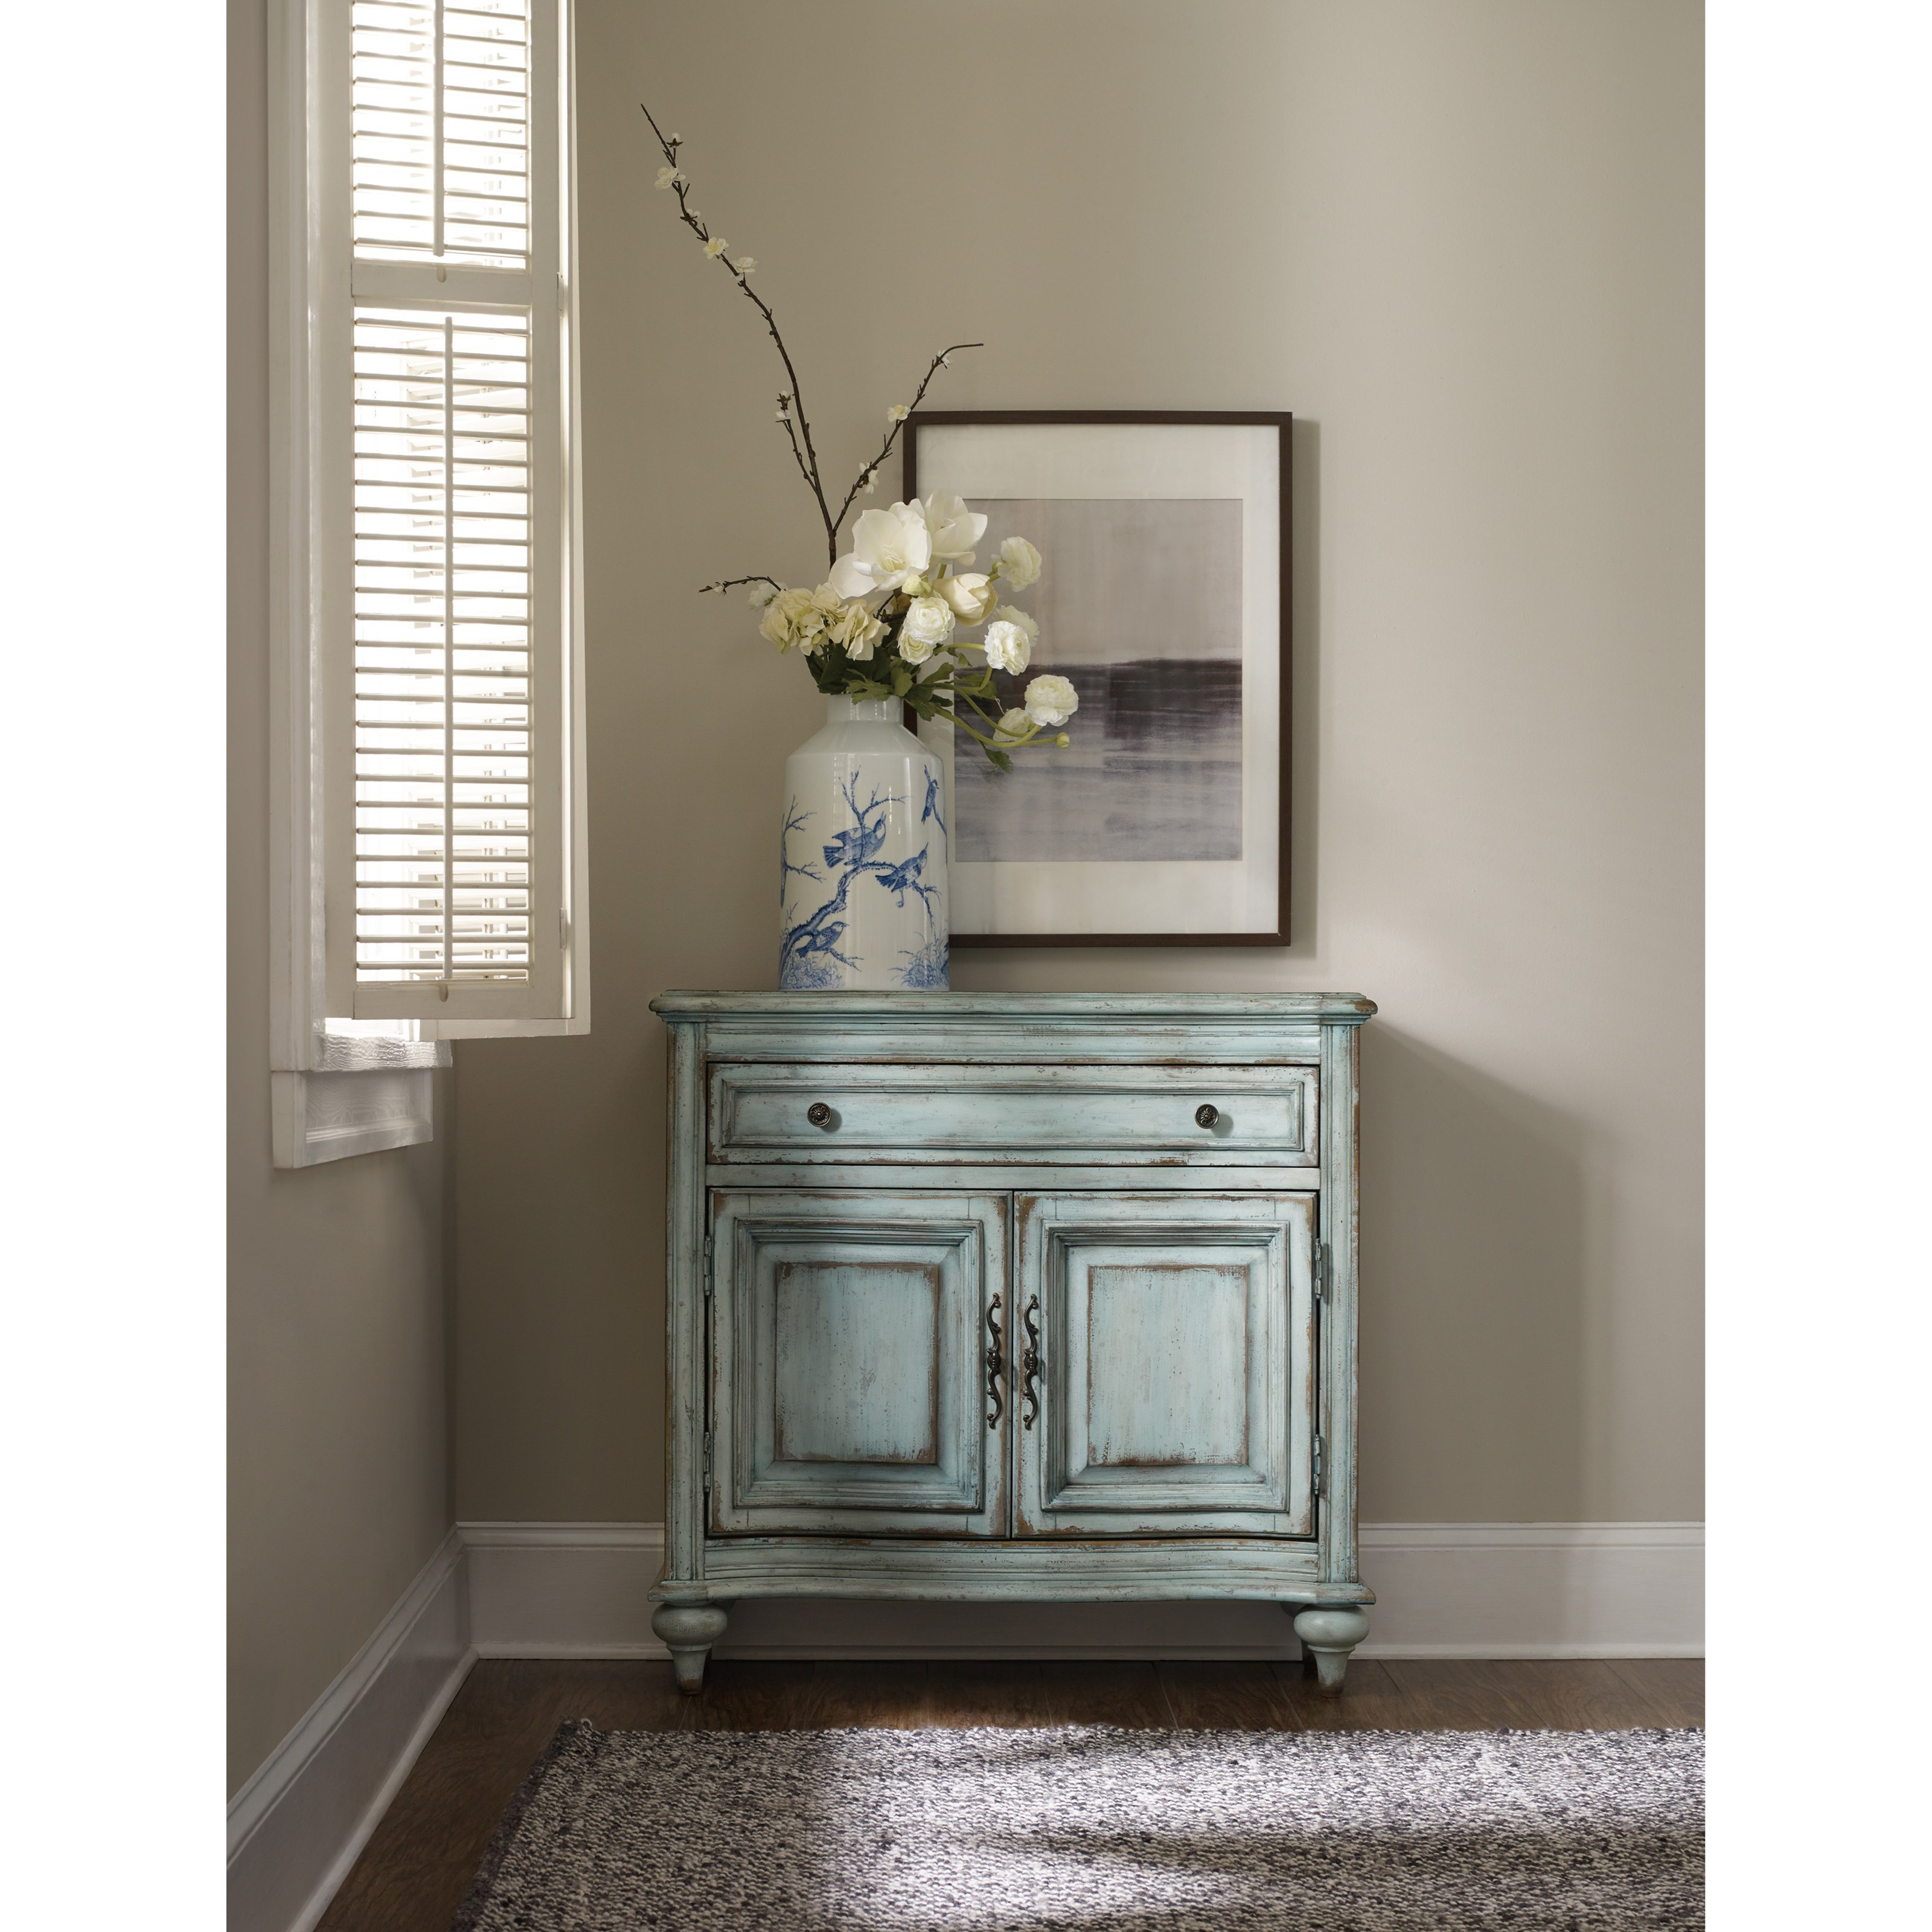 Hooker Furniture Living Room Accents 5494 85001 Ltbe 1 Drawer 2 Door Chest In Distressed Blue